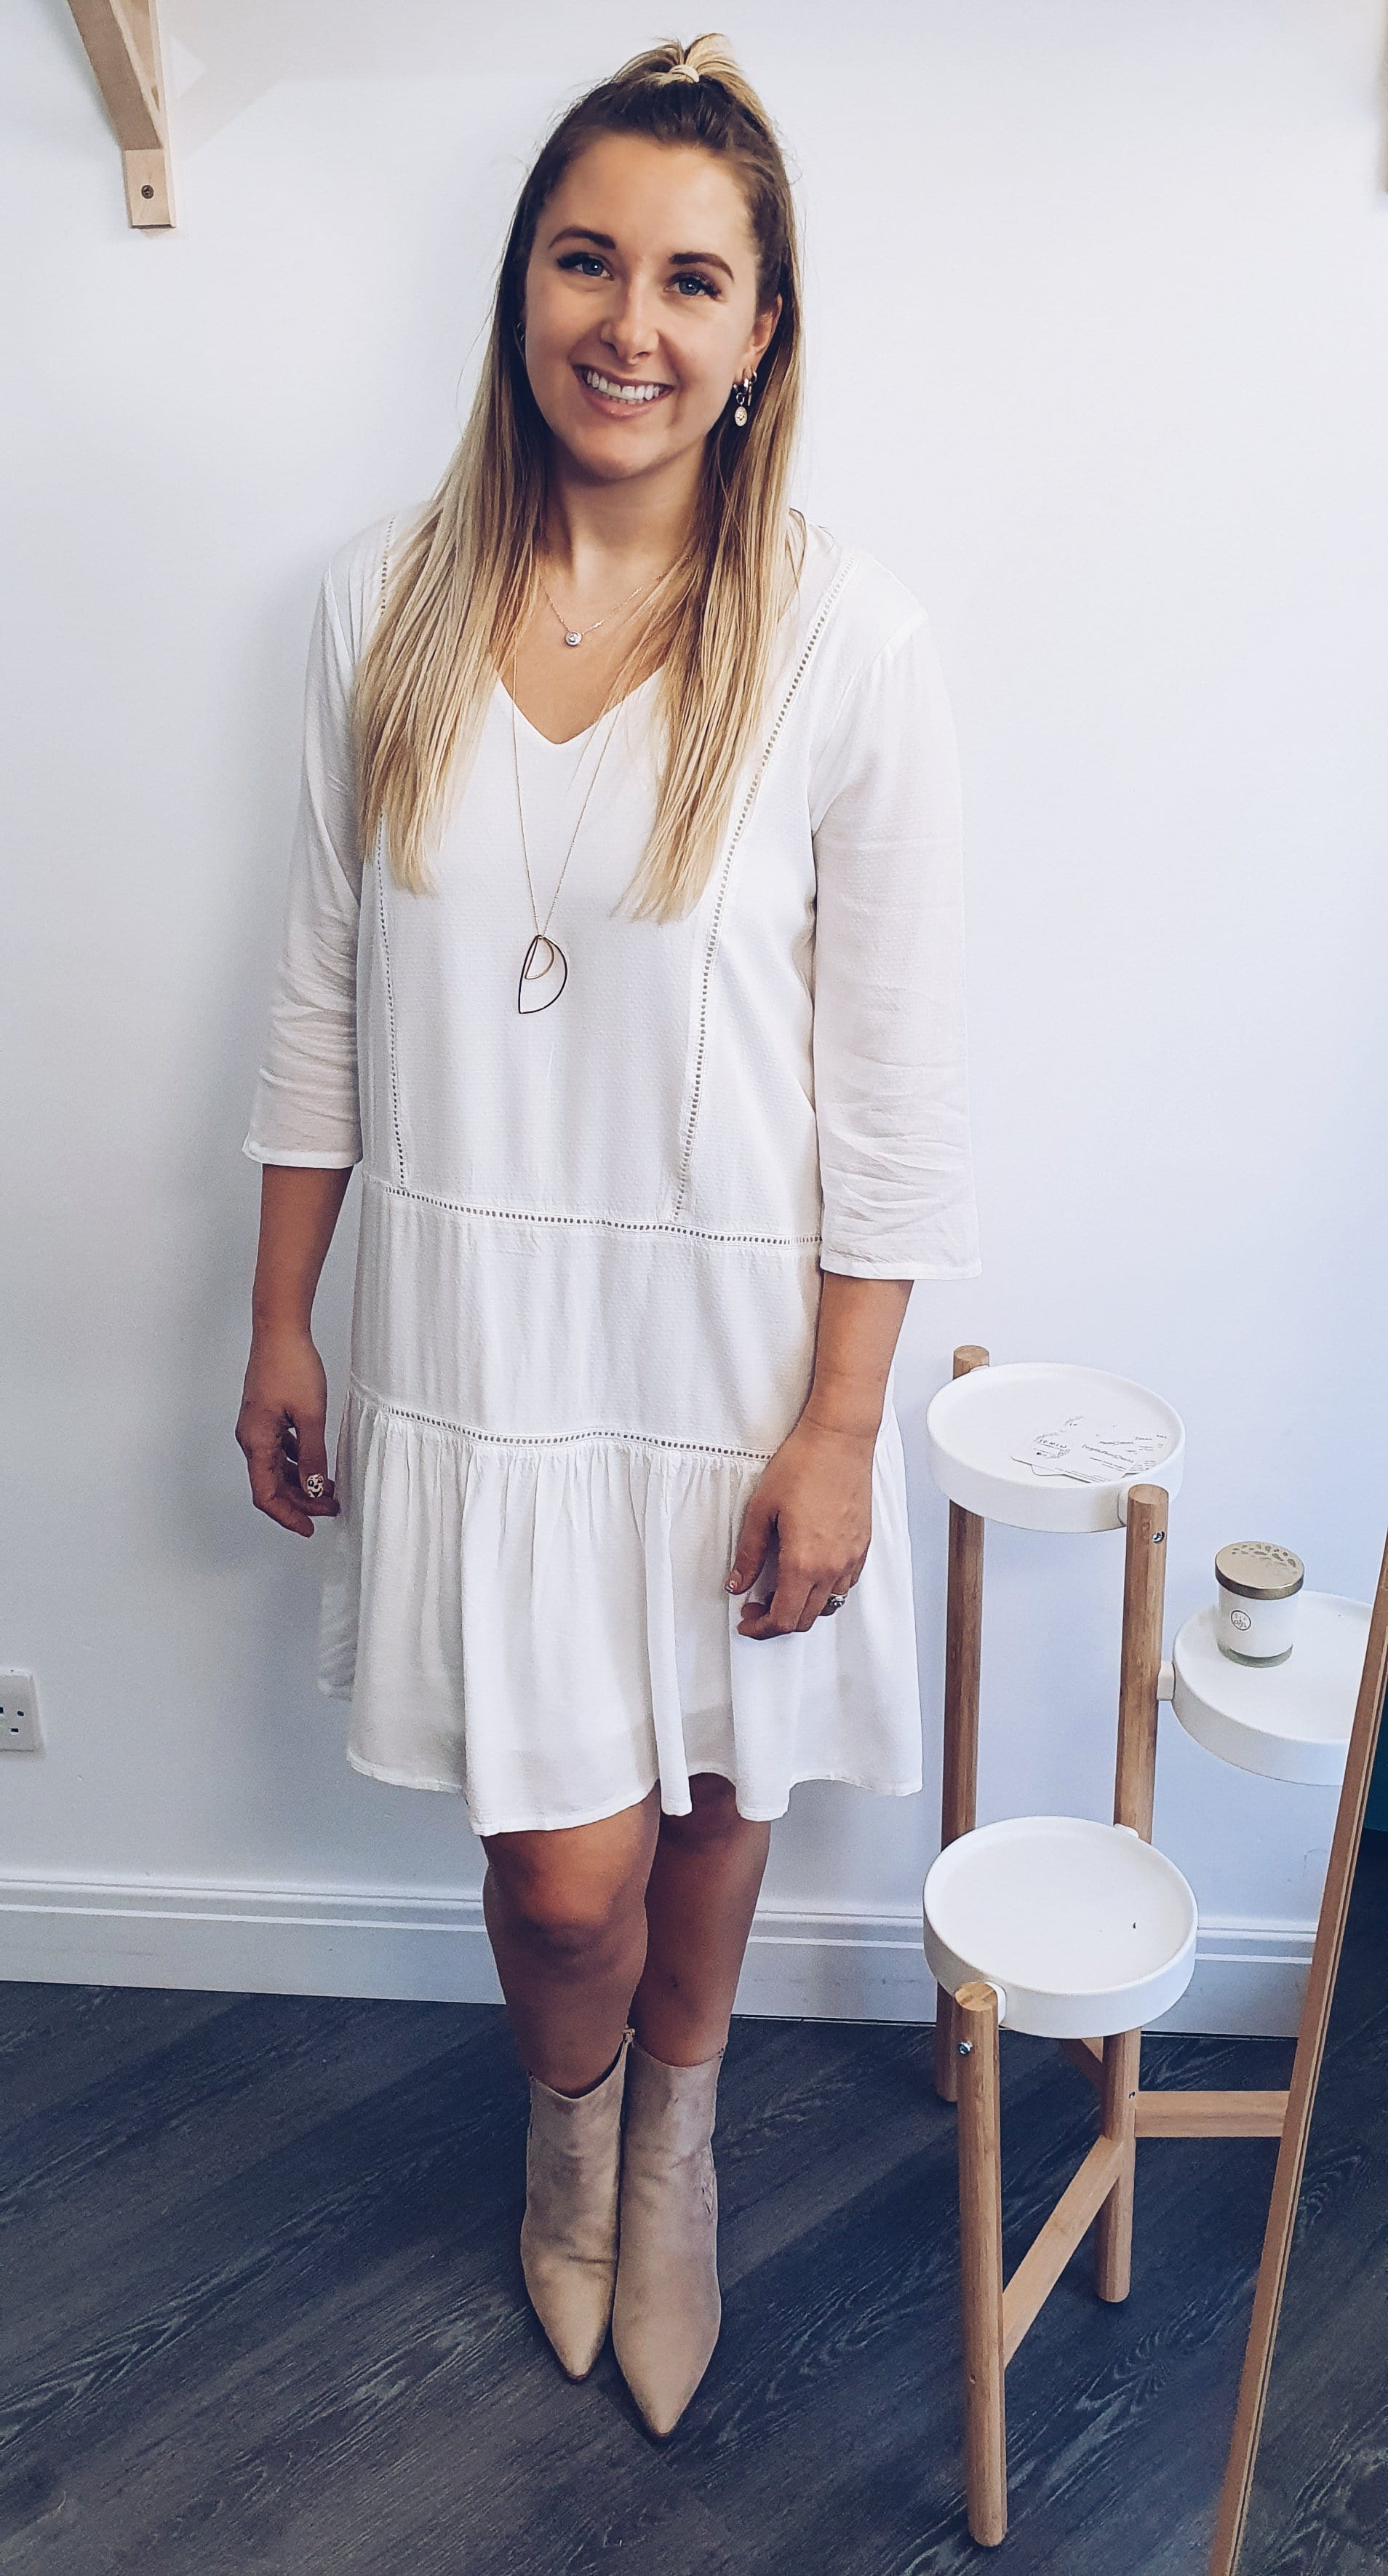 The ichi white sundress